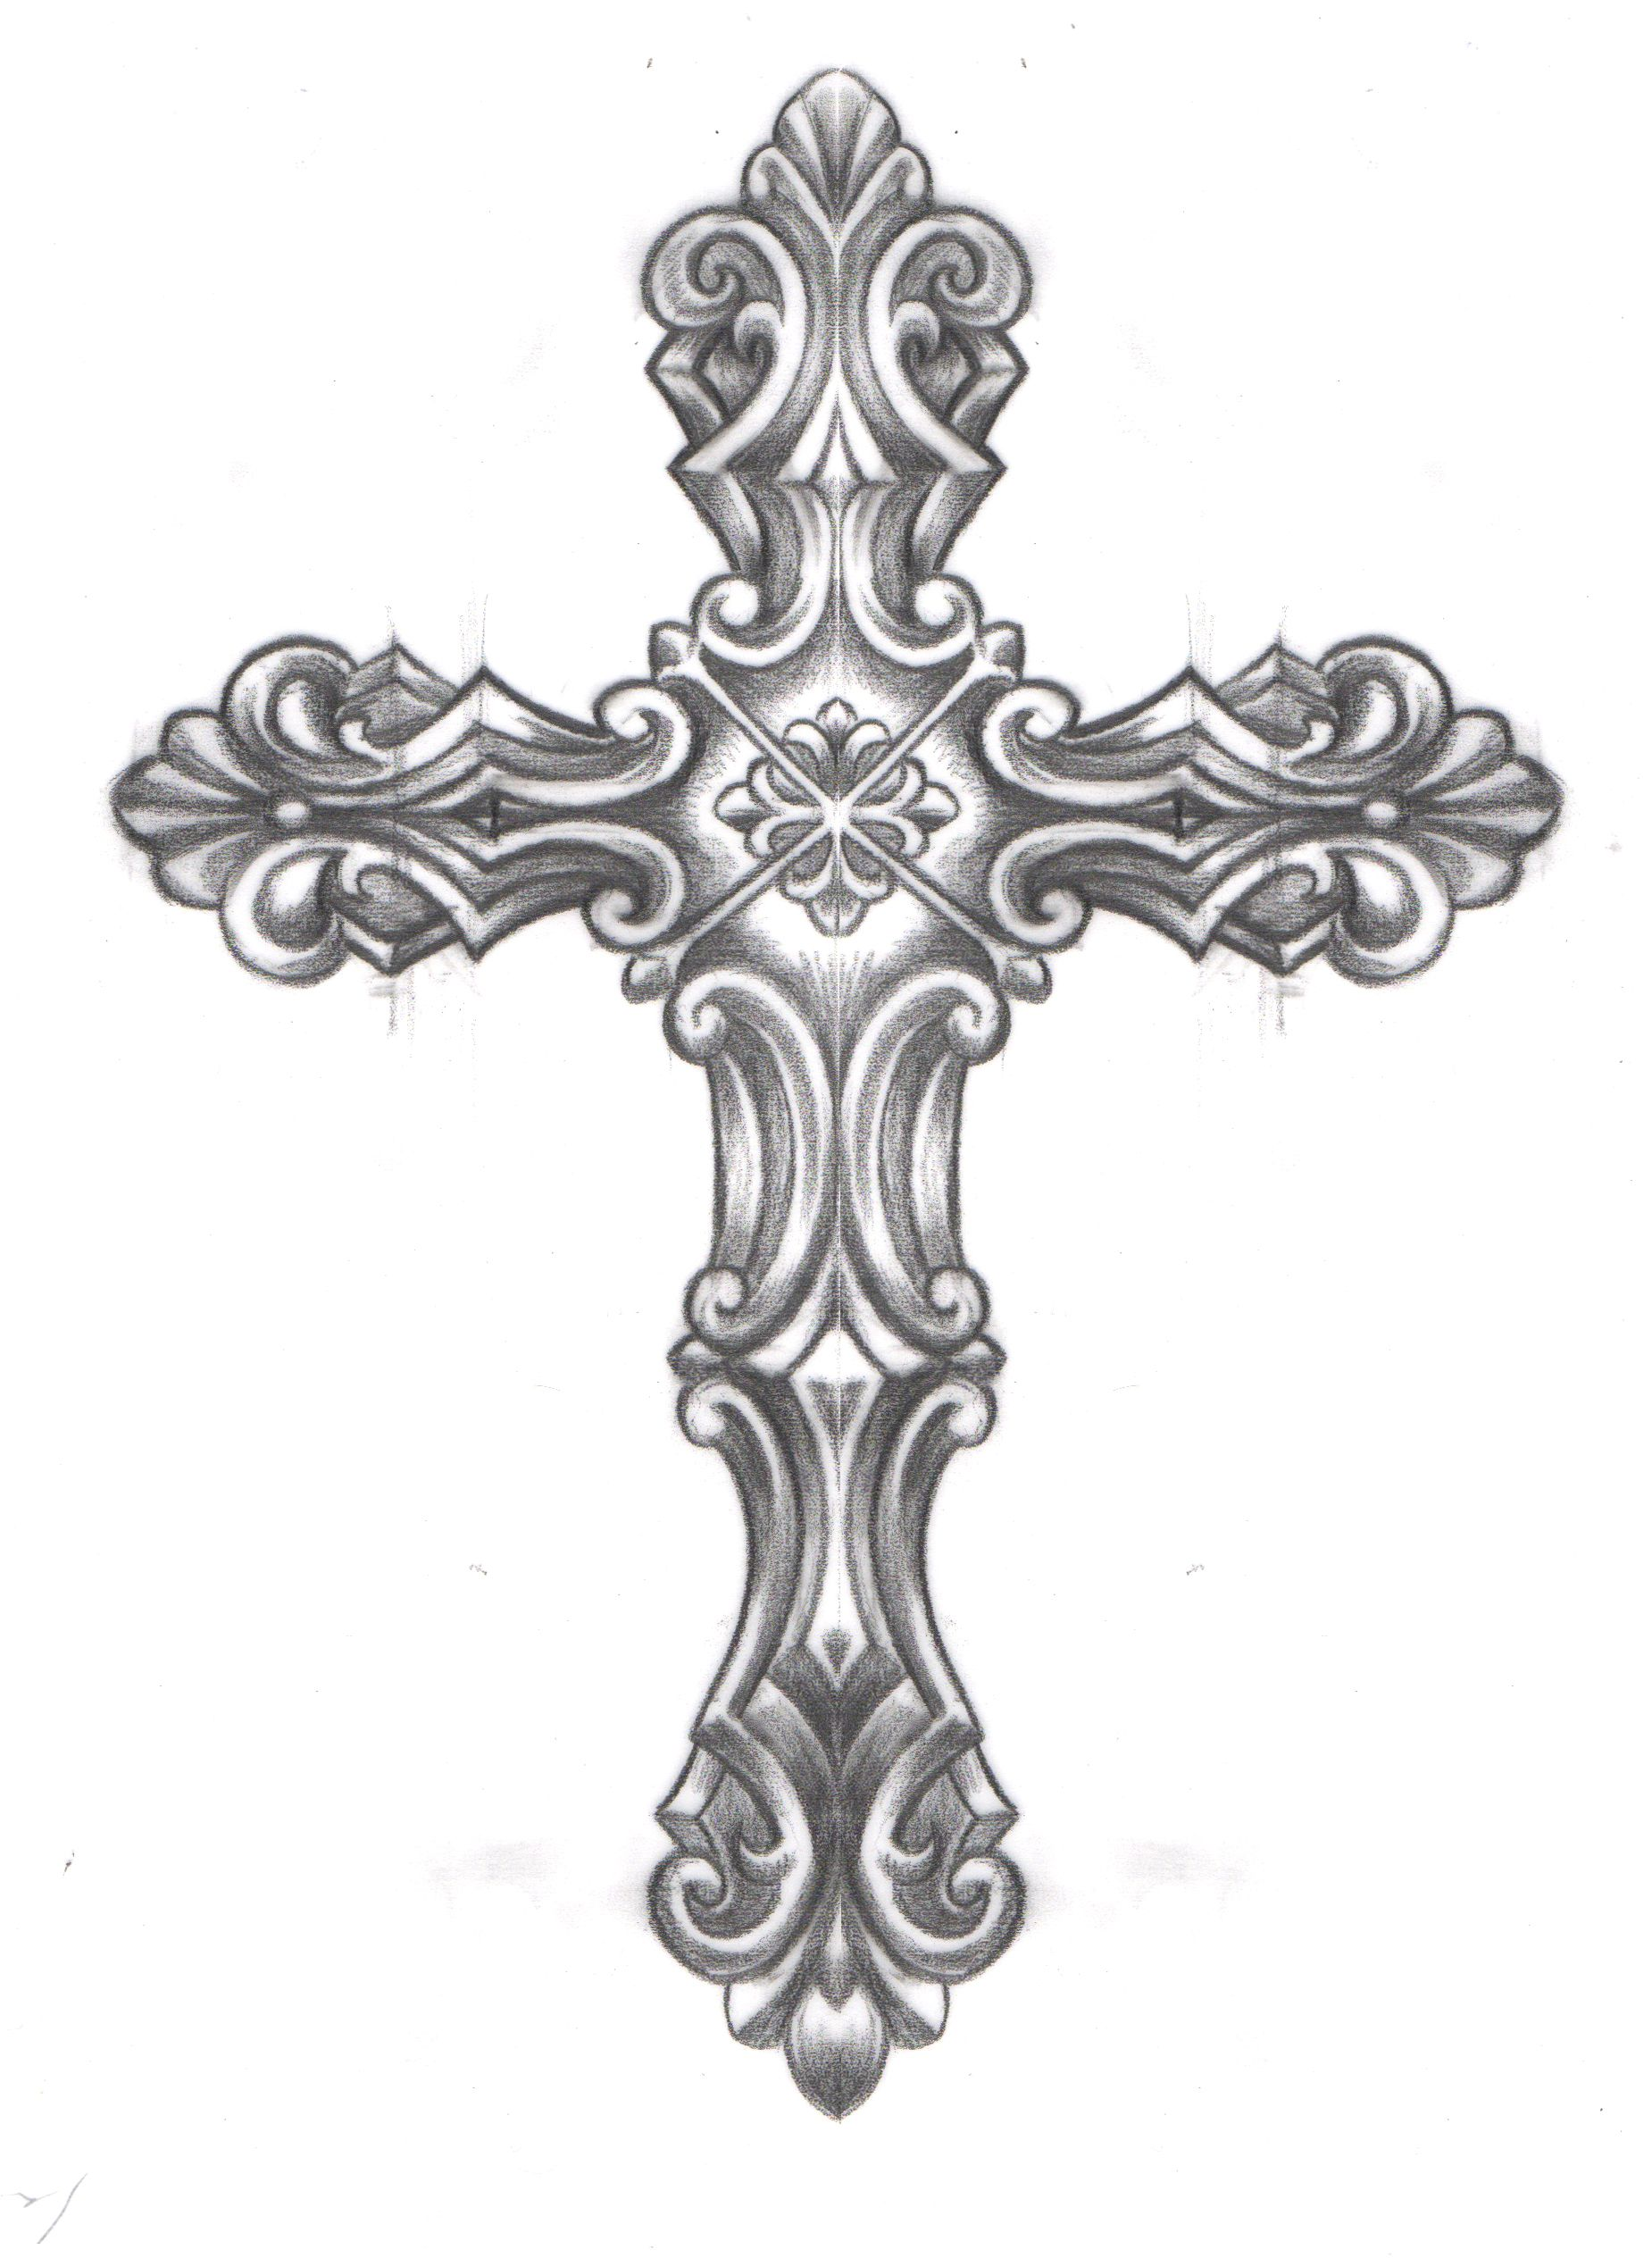 filigree cross tattoo designs images galleries with a bite. Black Bedroom Furniture Sets. Home Design Ideas